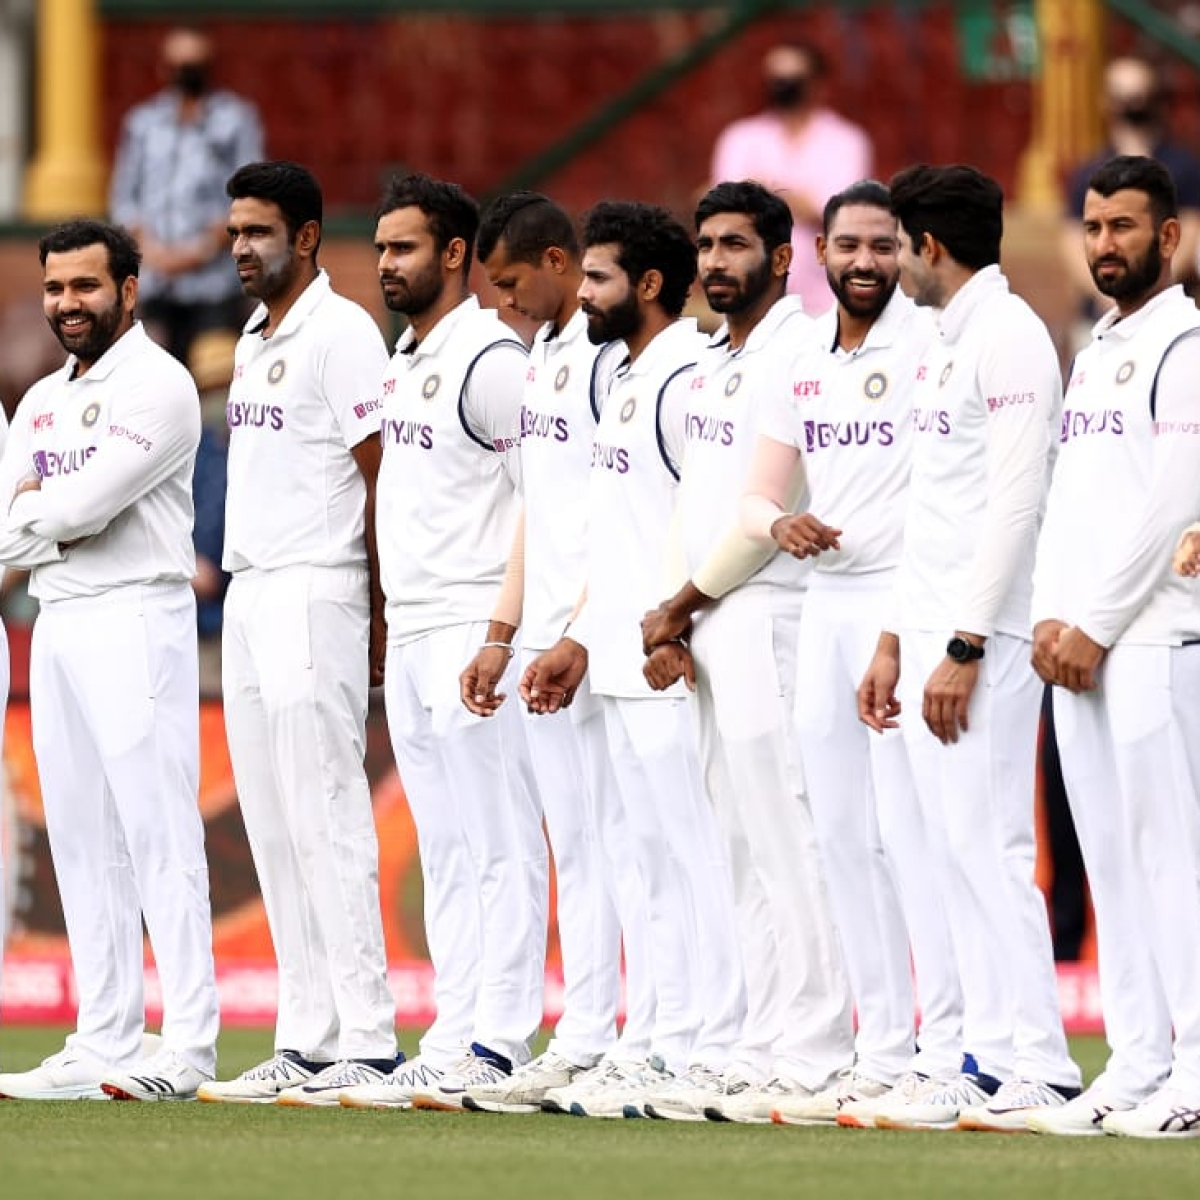 India vs Australia, 4th Test: Expected starting XI for injury-hit Indian team in Brisbane